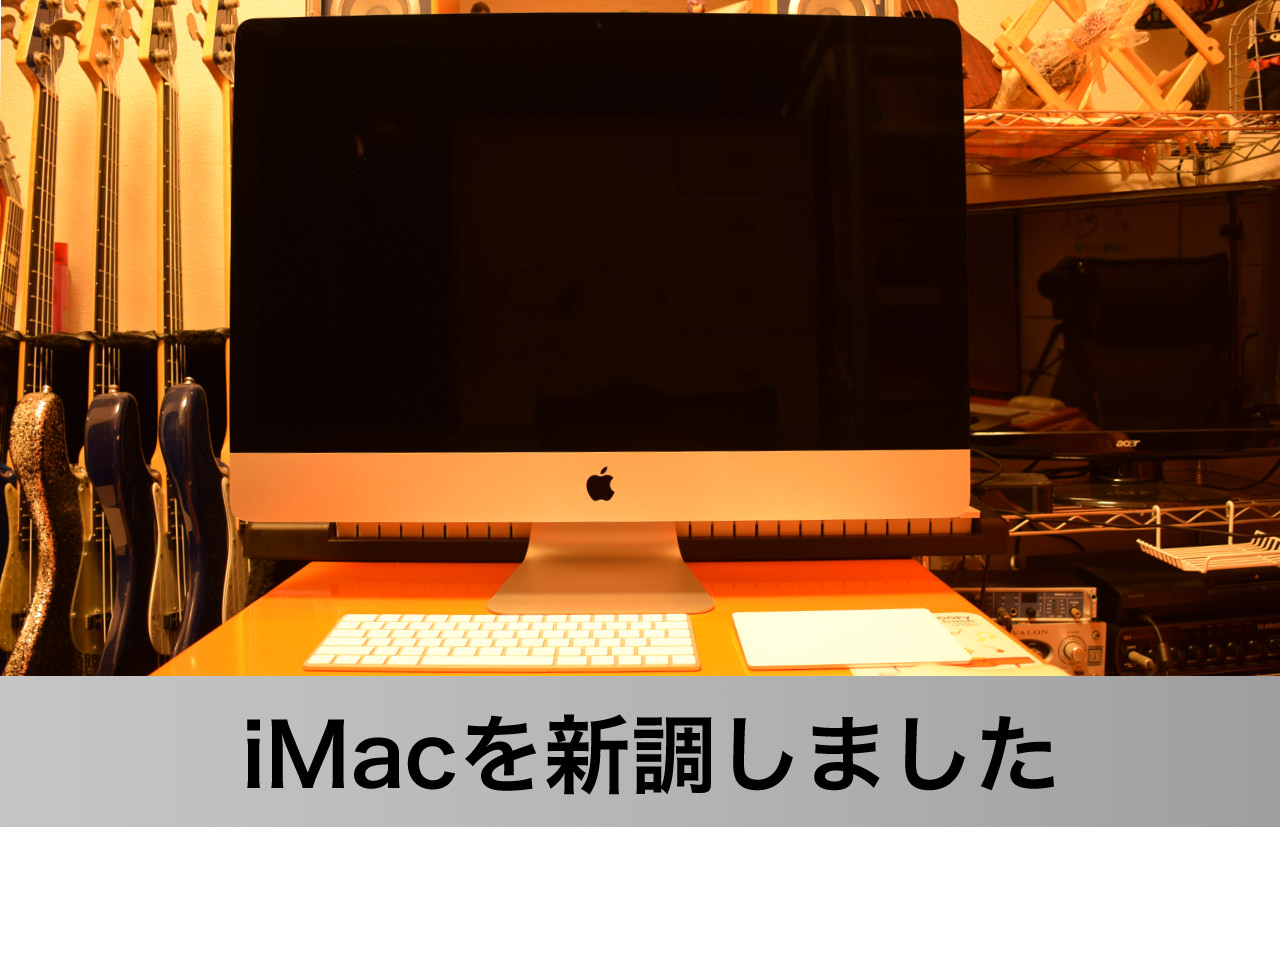 iMac Retina 5K display (27-inch Late 2015)を手に入れました